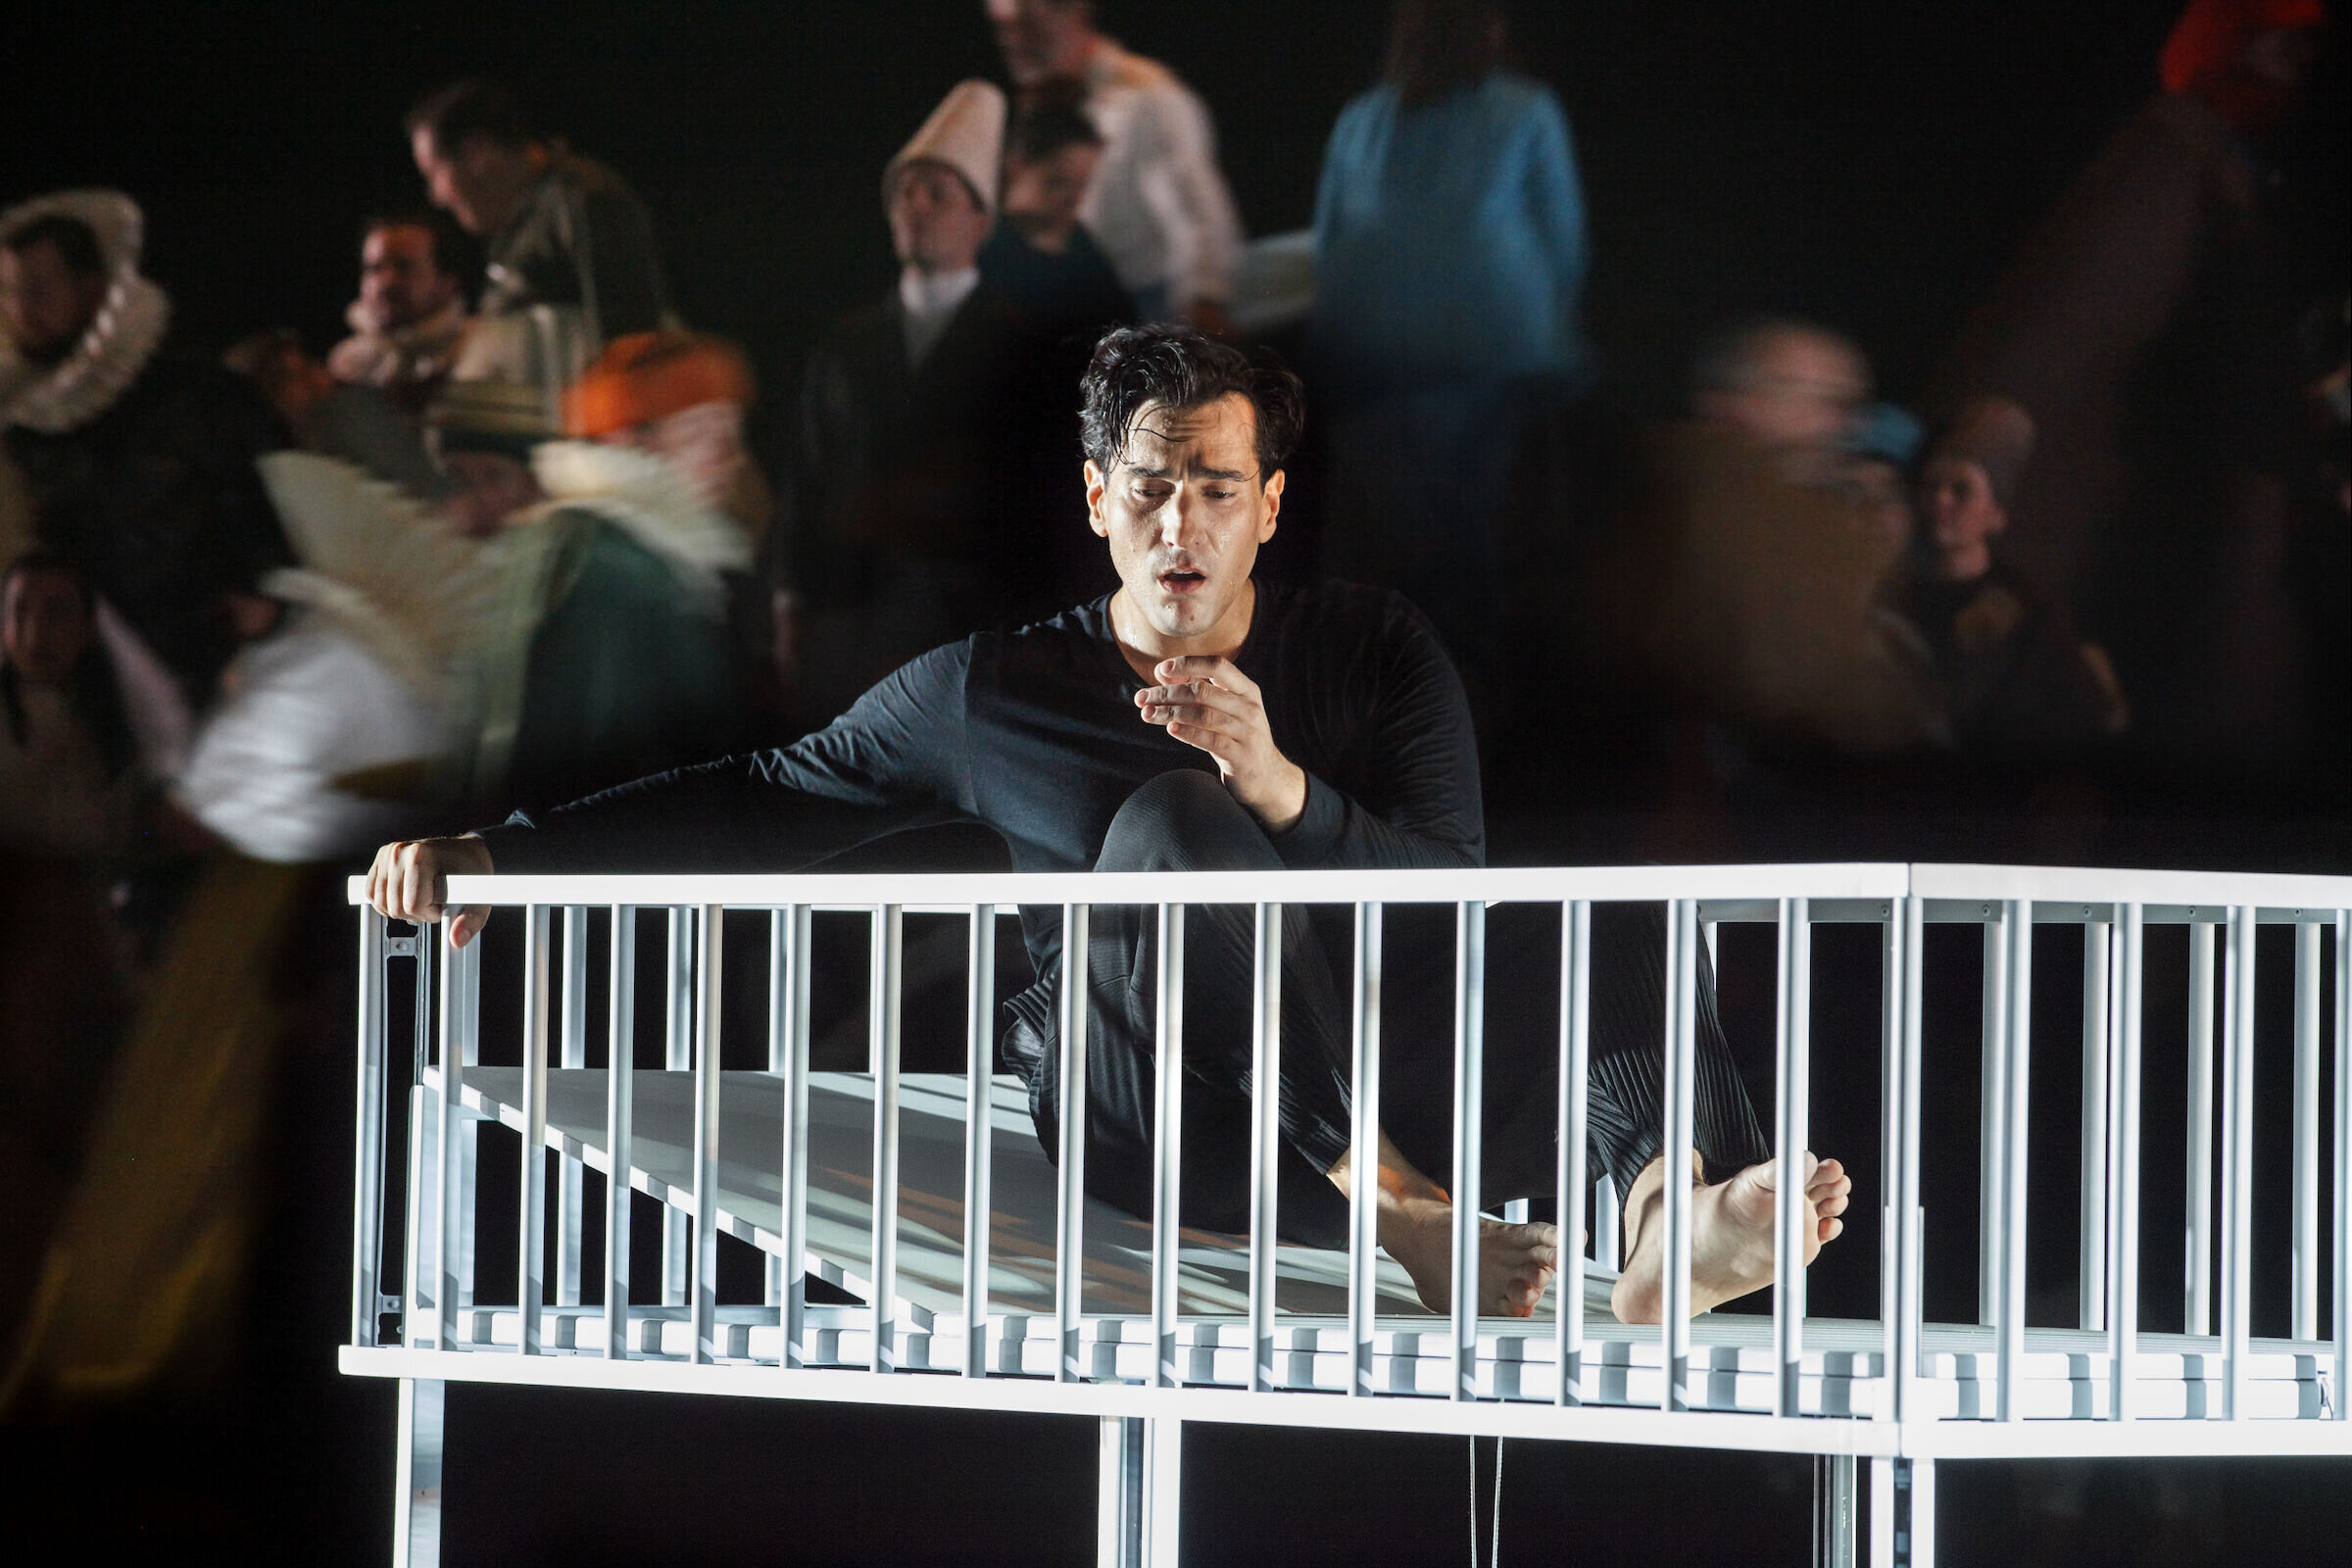 Leonardo Capalbo as Don Carlos. photo by Annemie Augustijns